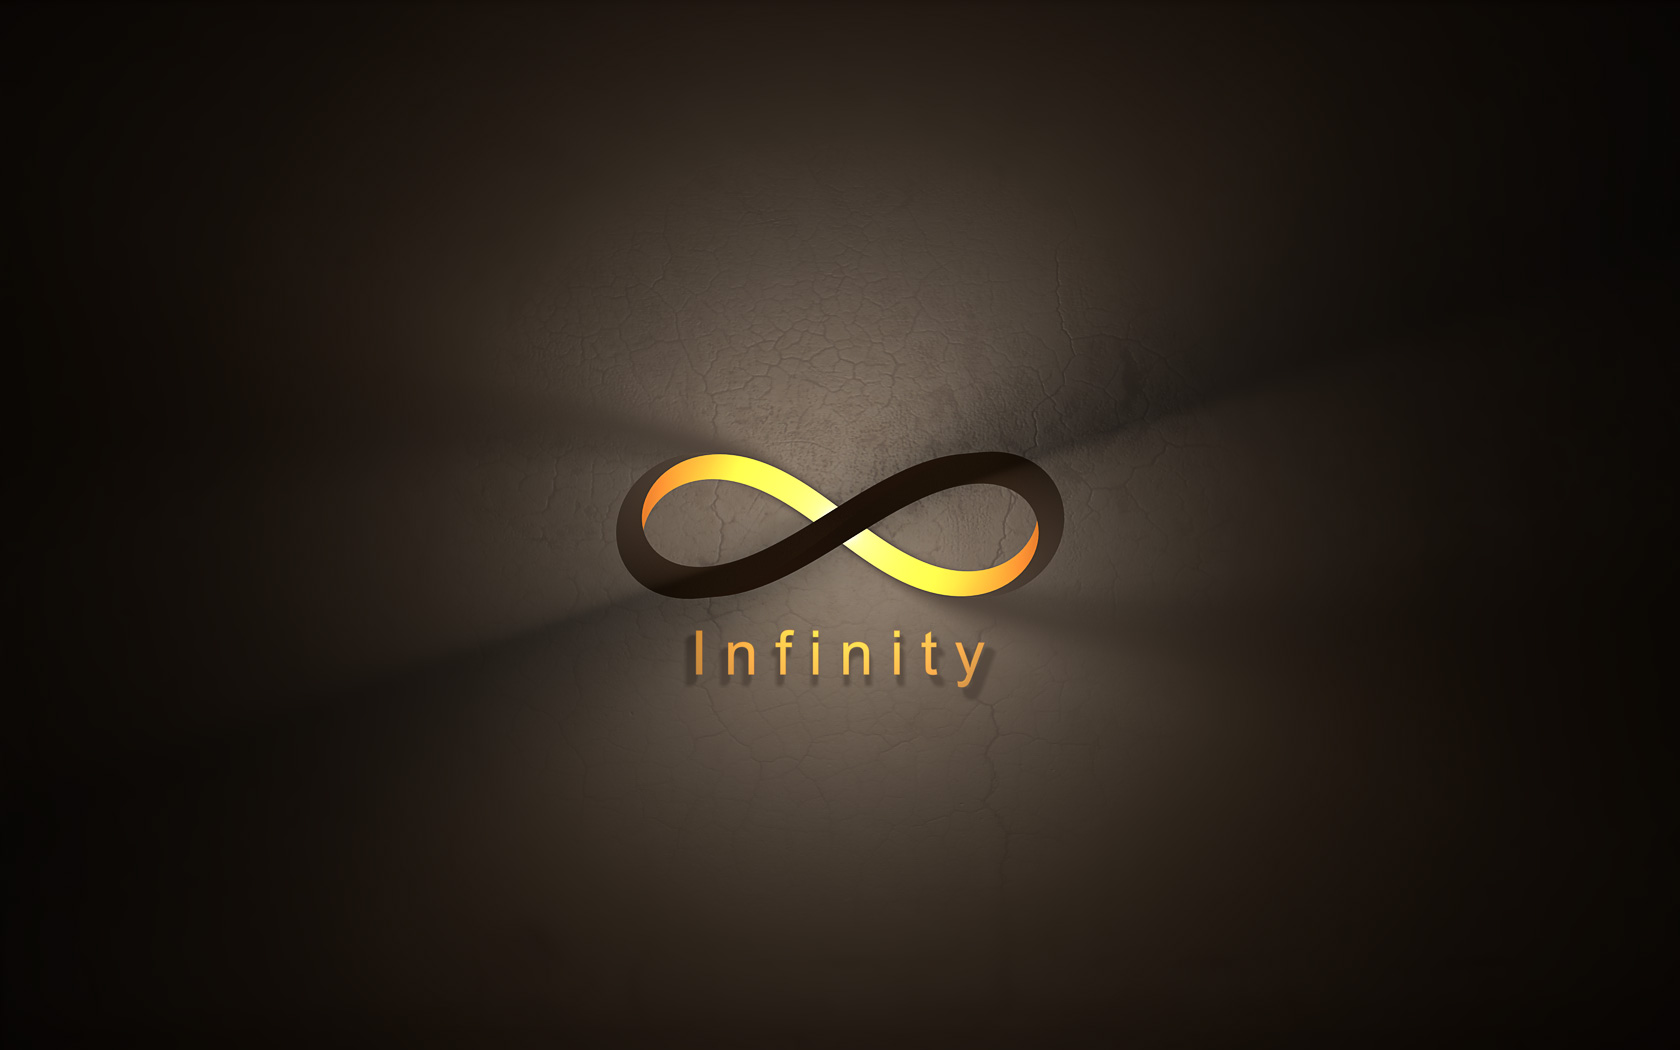 windows infinity desktop background - photo #13